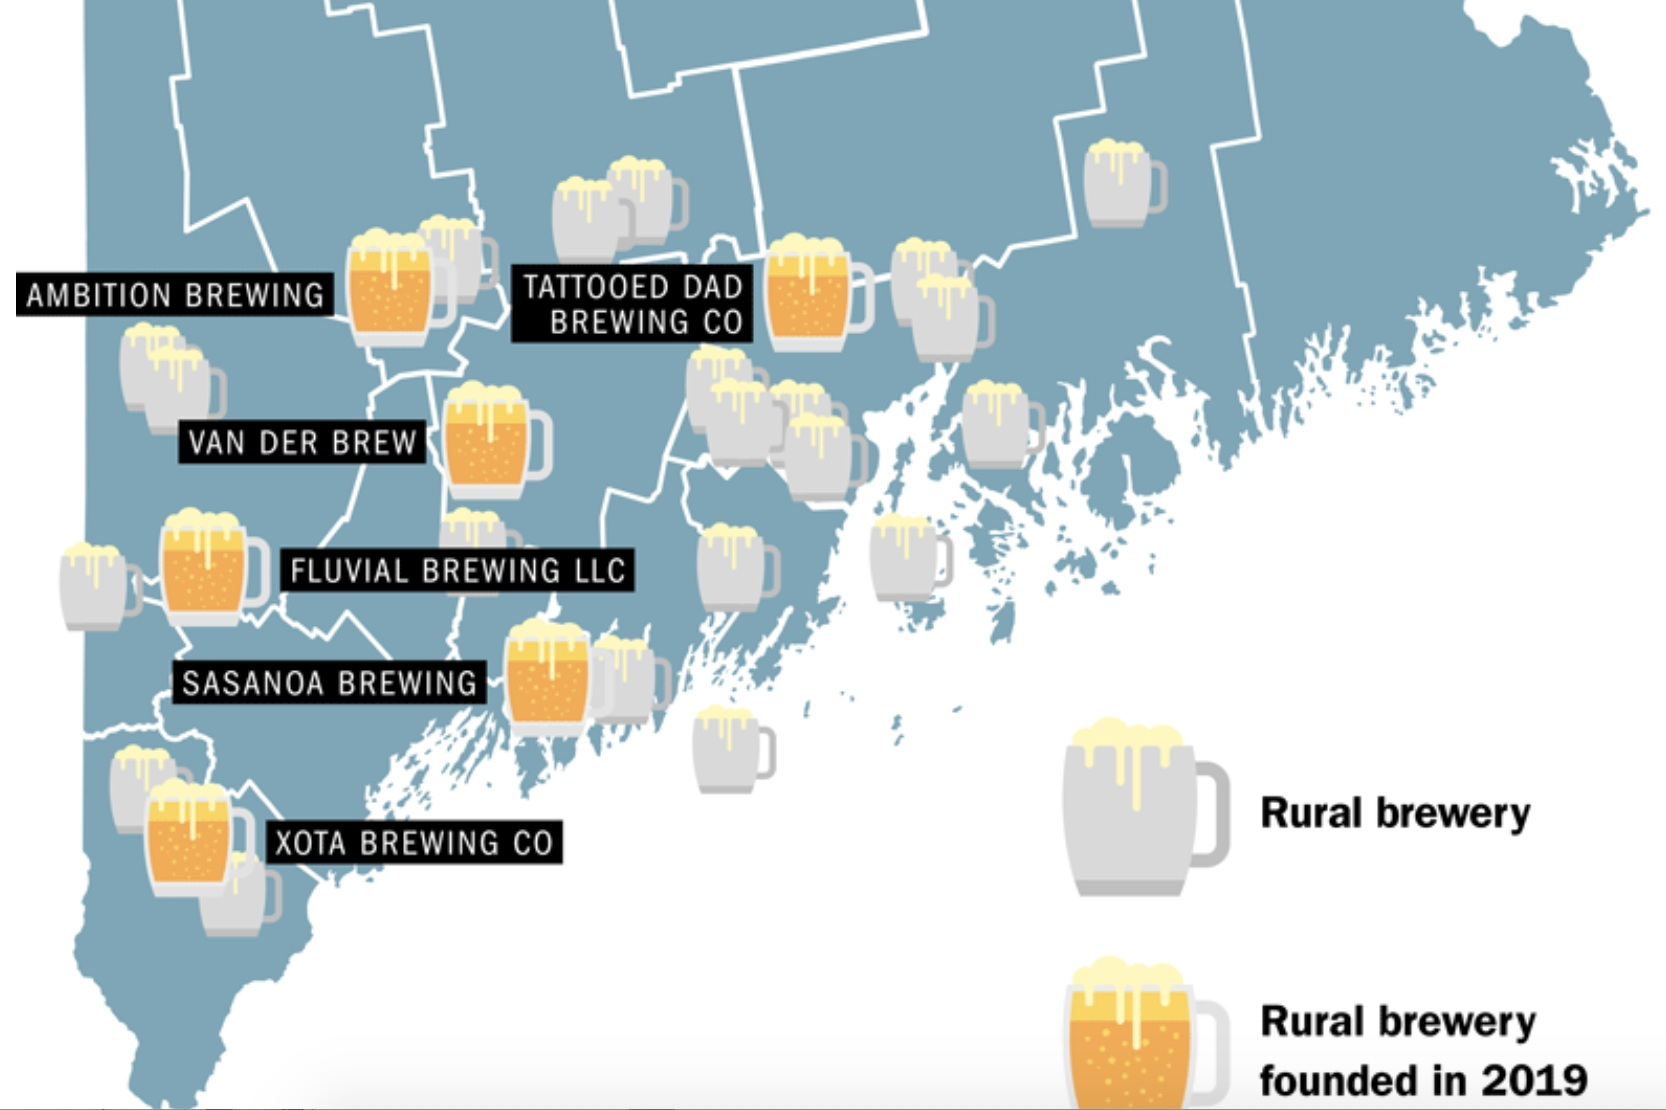 Rural brewers craft a niche by tapping into a new business model - Read the full article